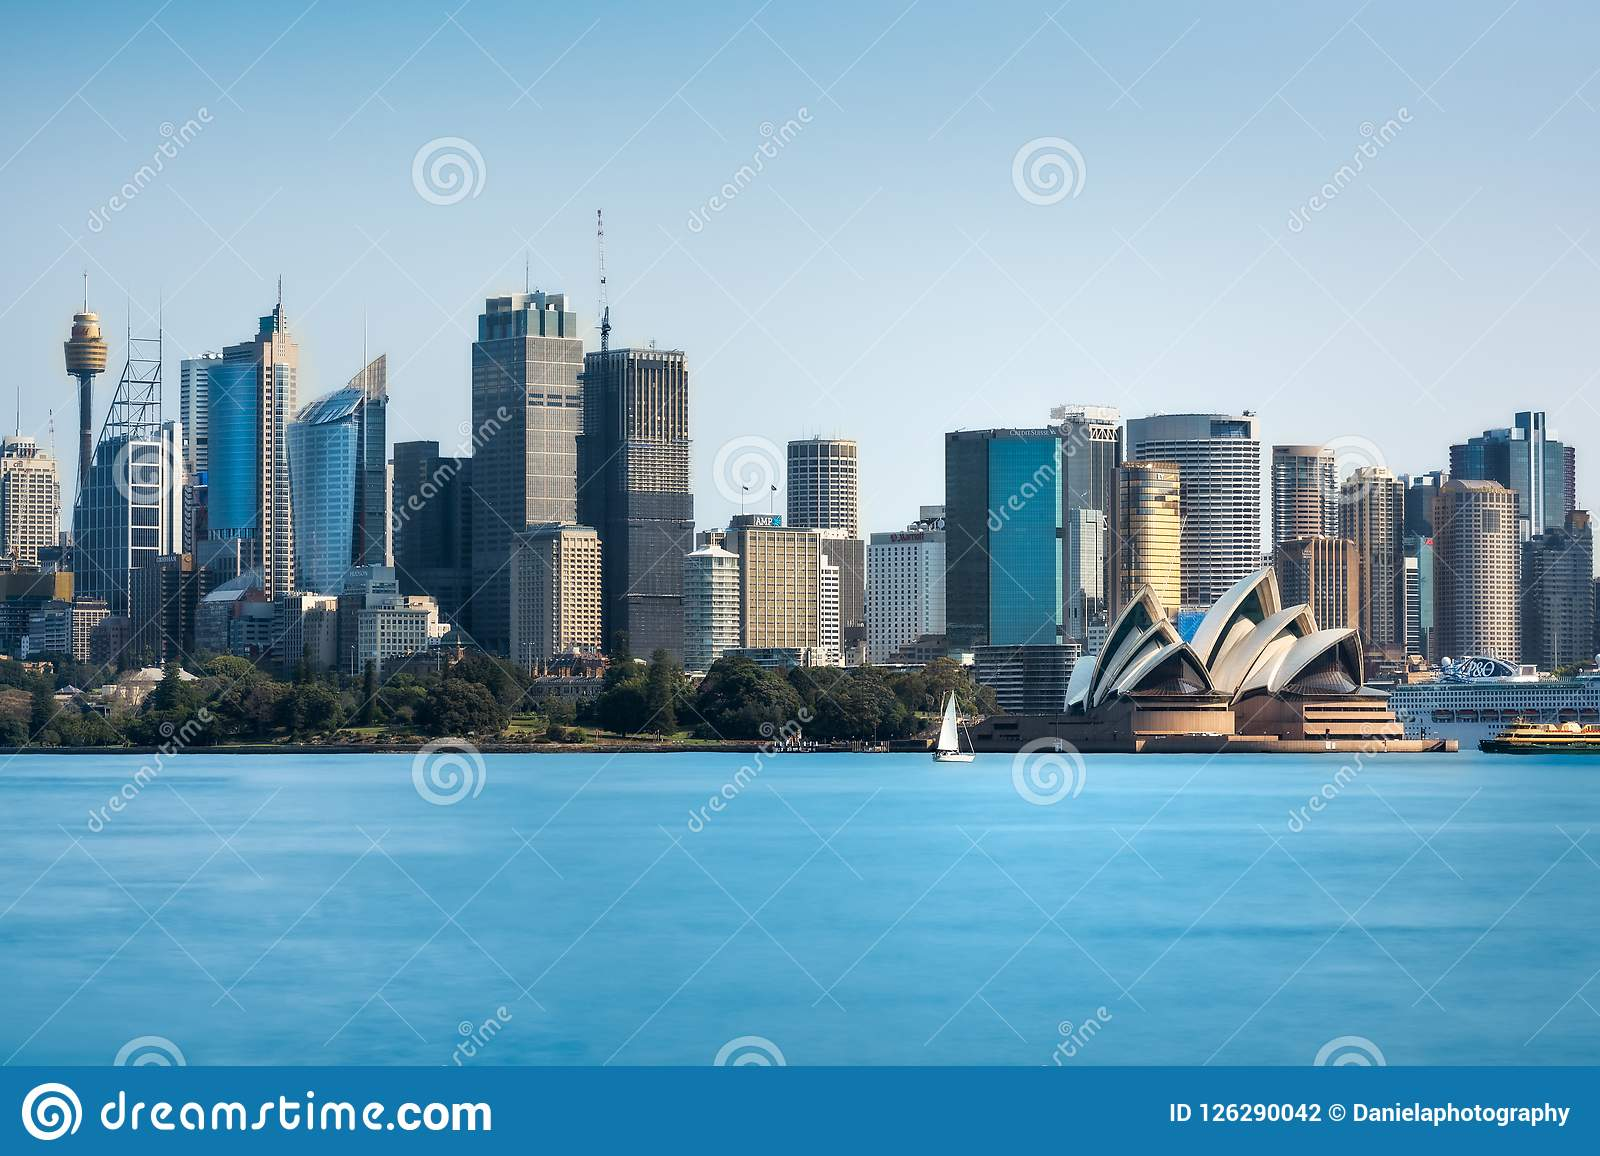 Sydney Skyline - Daytime View from Cremorne Point